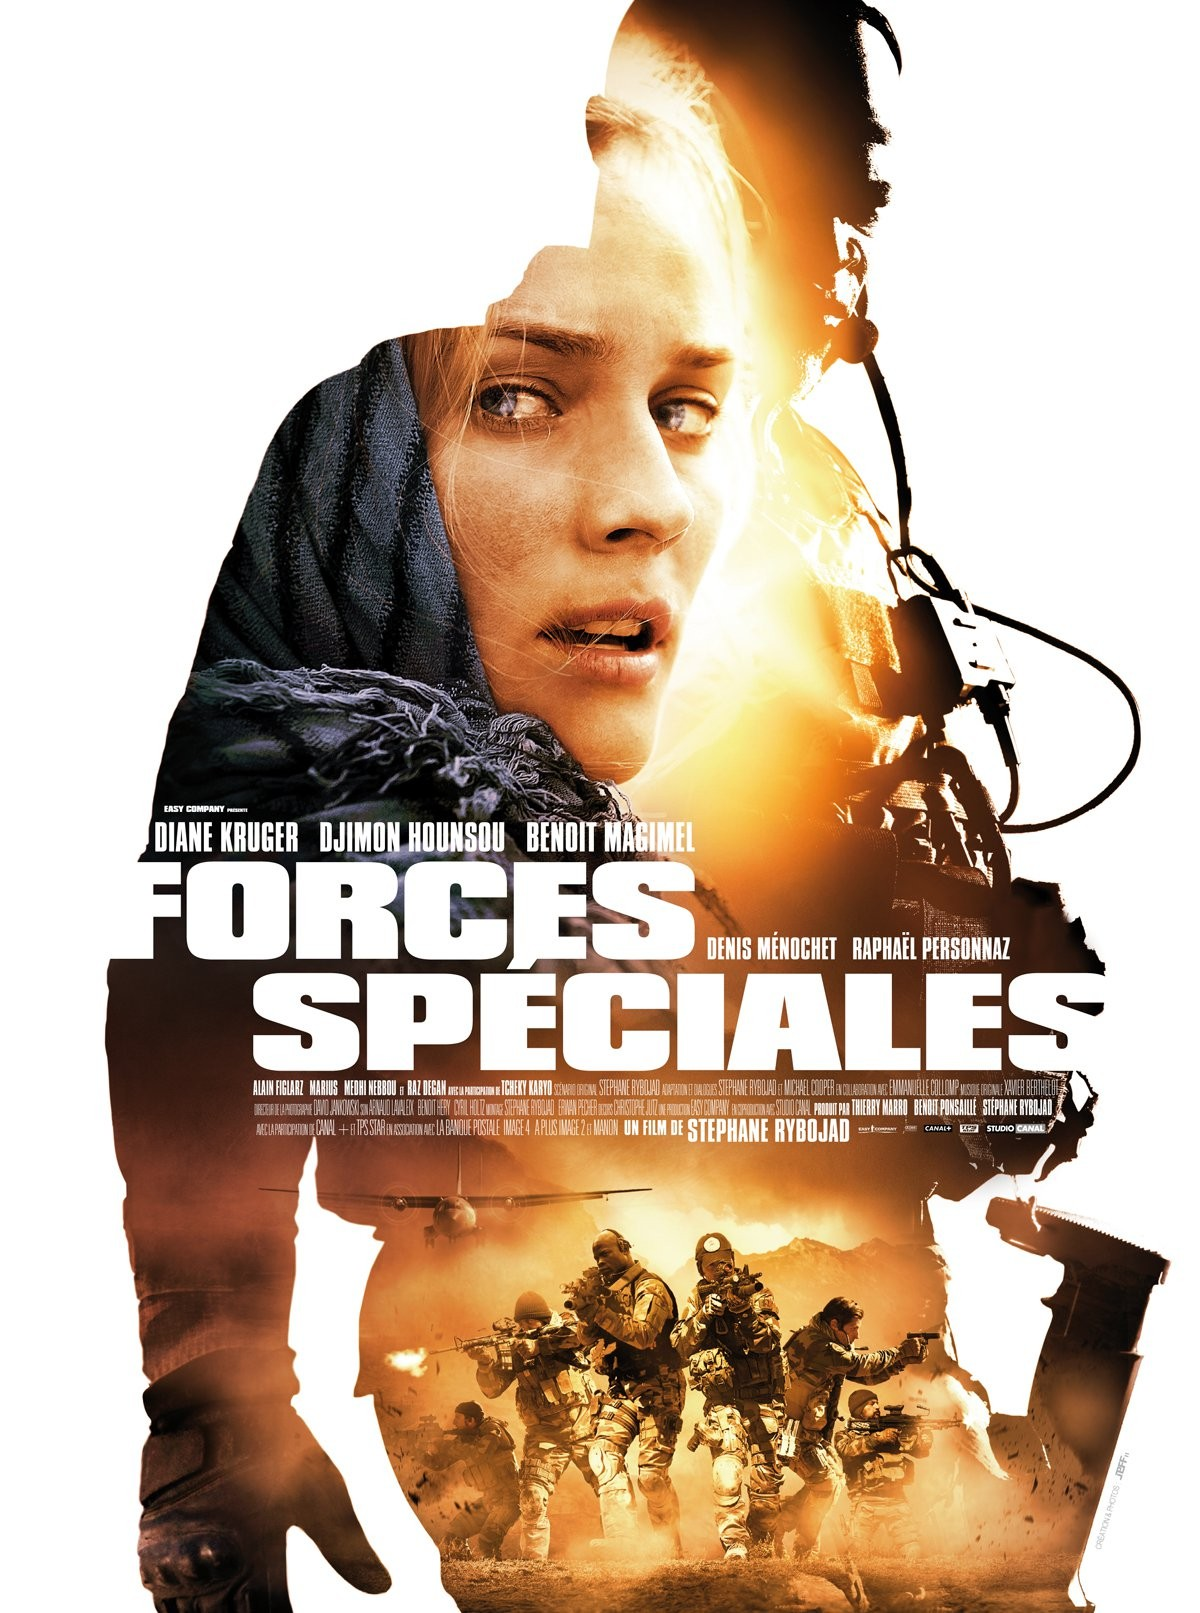 Special Forces FRENCH 2011 BDRip [MULTI]